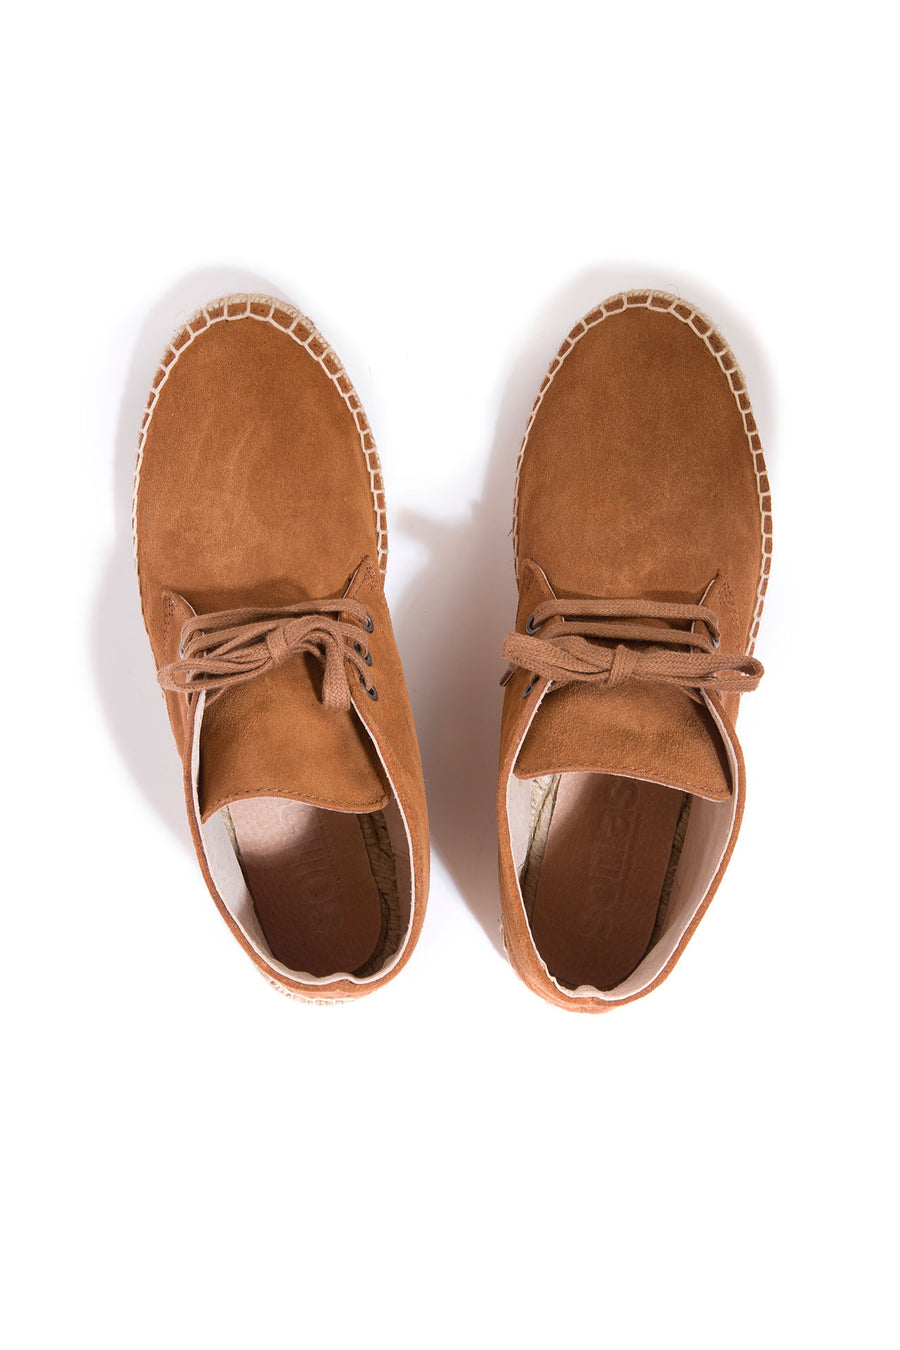 Madera - Brown Suede